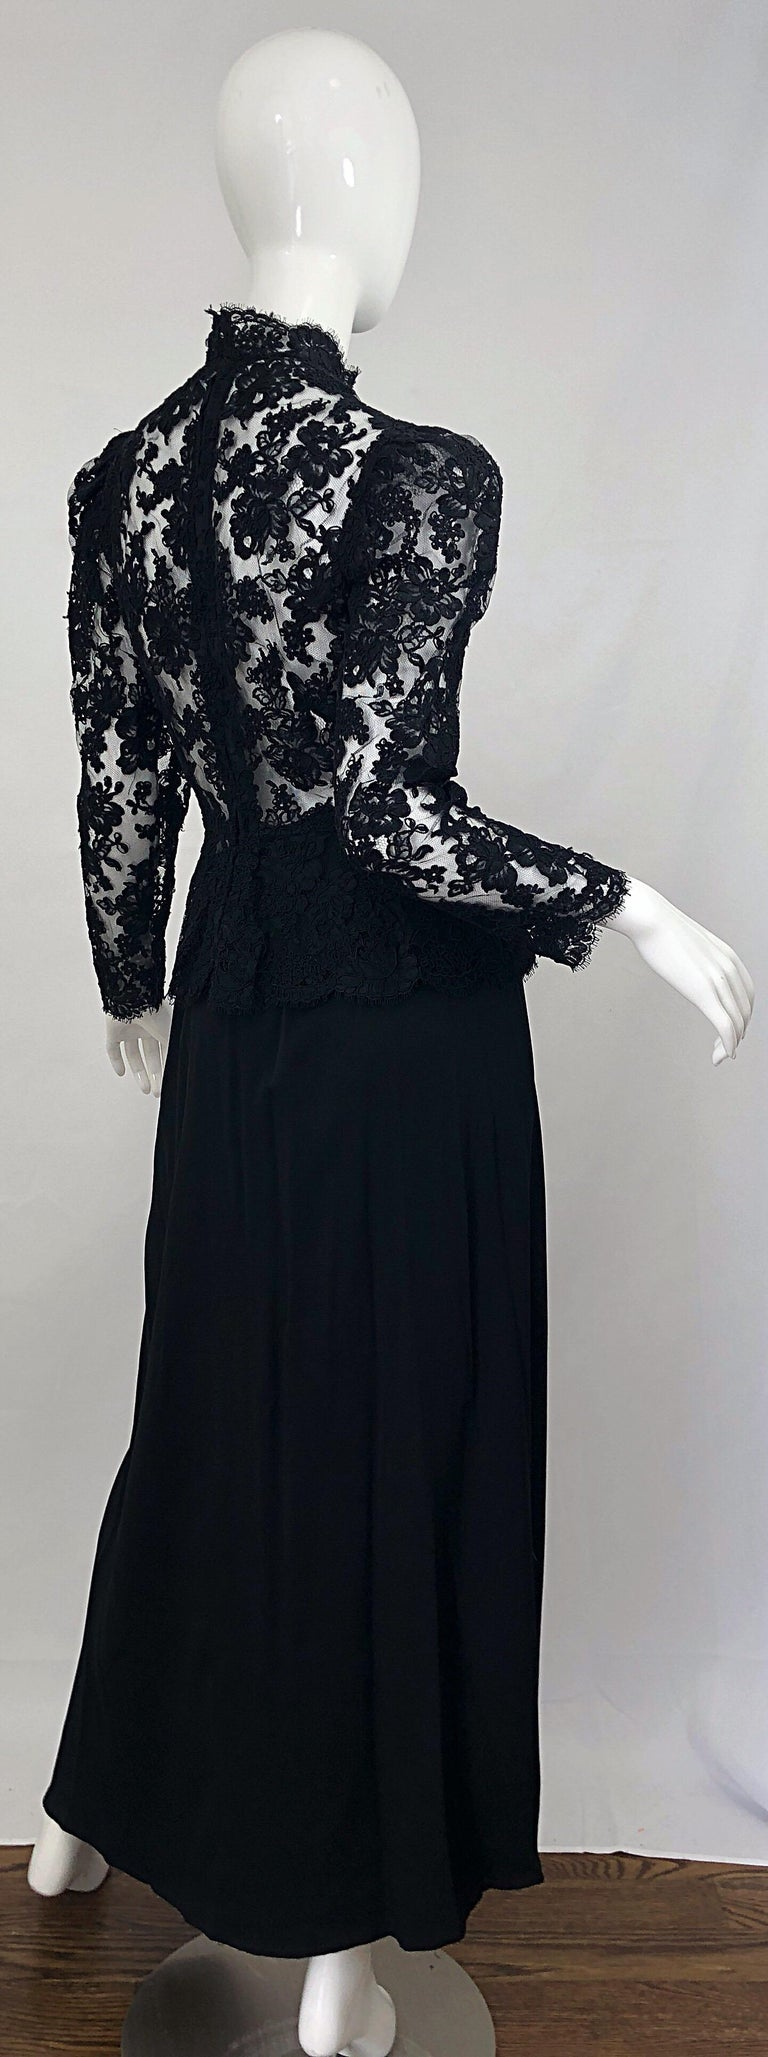 Vintage Vicky Tiel Couture 1980s Black Lace Victorian Top + Asymmetrical Skirt For Sale 7